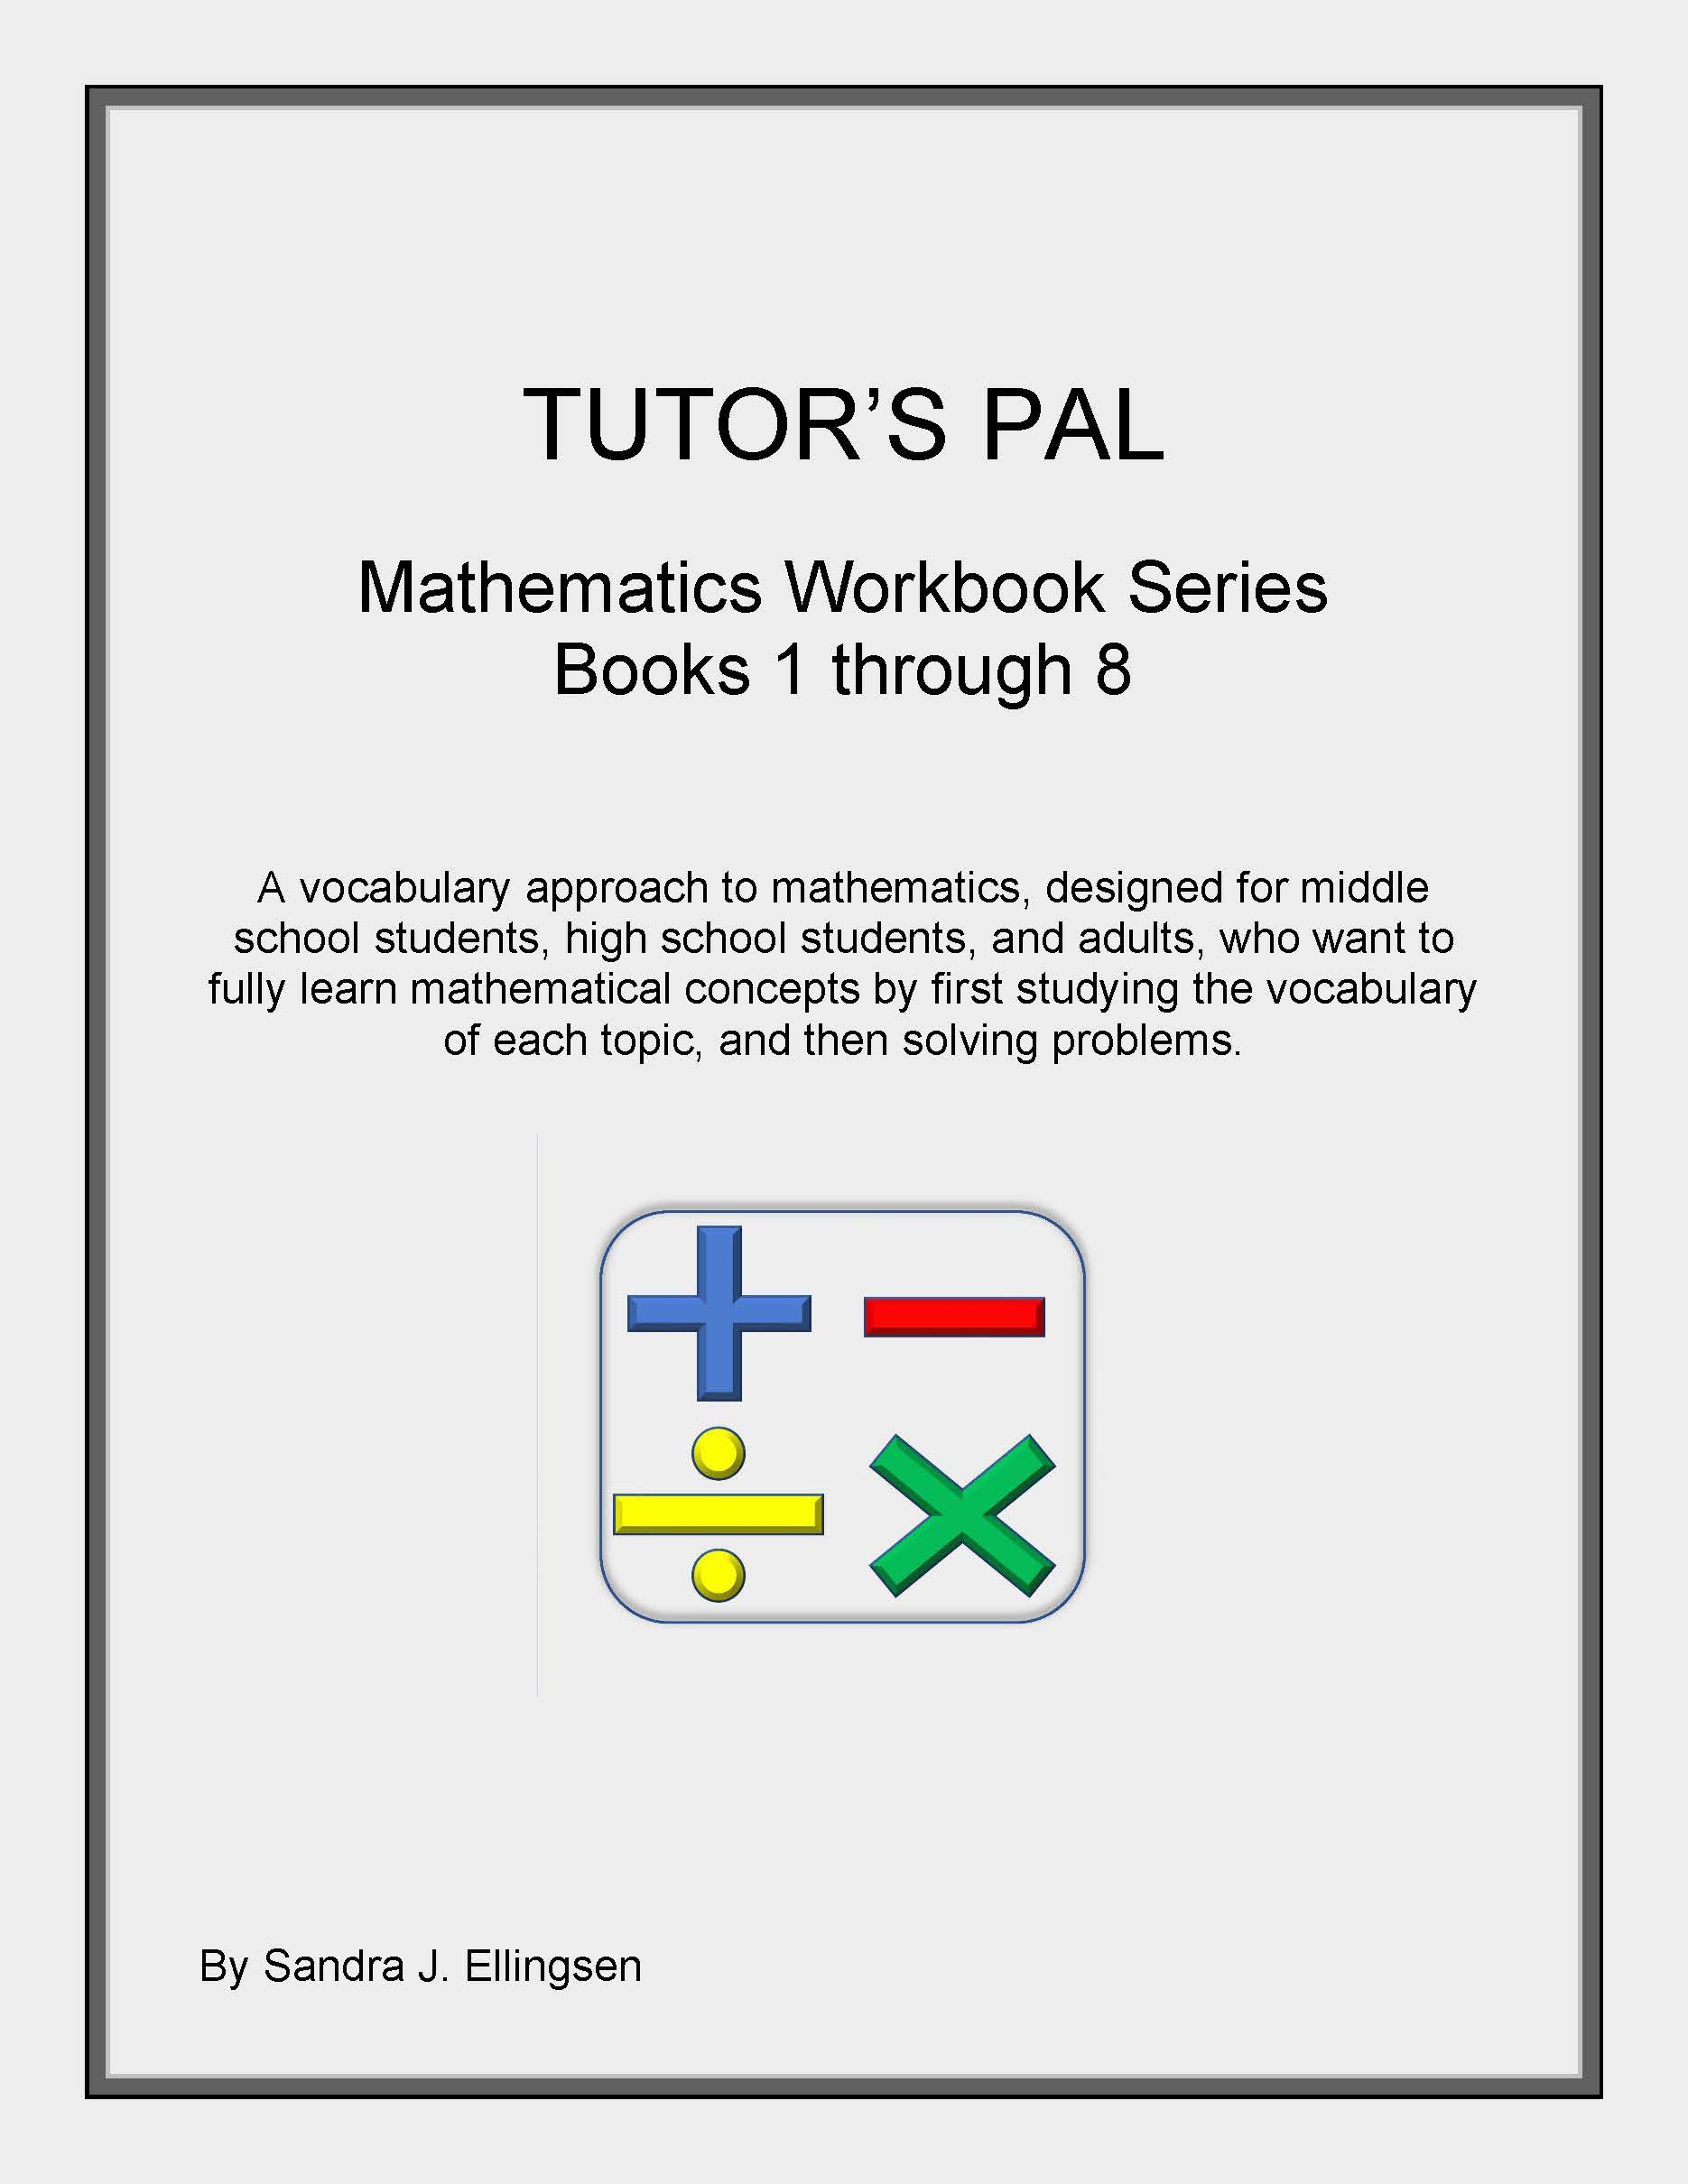 Tutor's Pal Mathematics Workbook Series